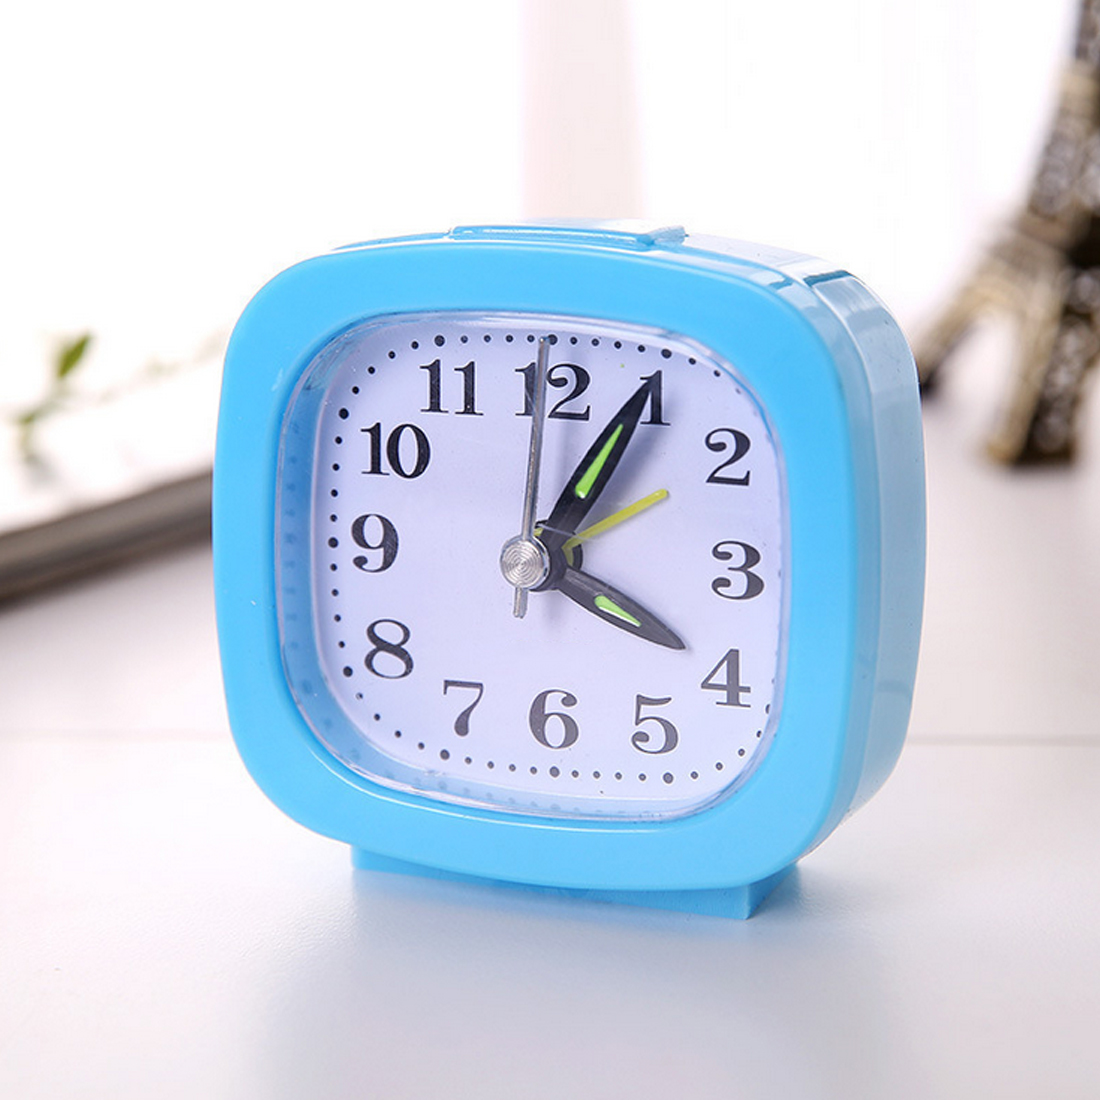 Mini Creative Lovely Square Small Bed Alarm Clock Compact Travel Clock Portable Children Student Desk Watch Clock Home Decor Переносные часы